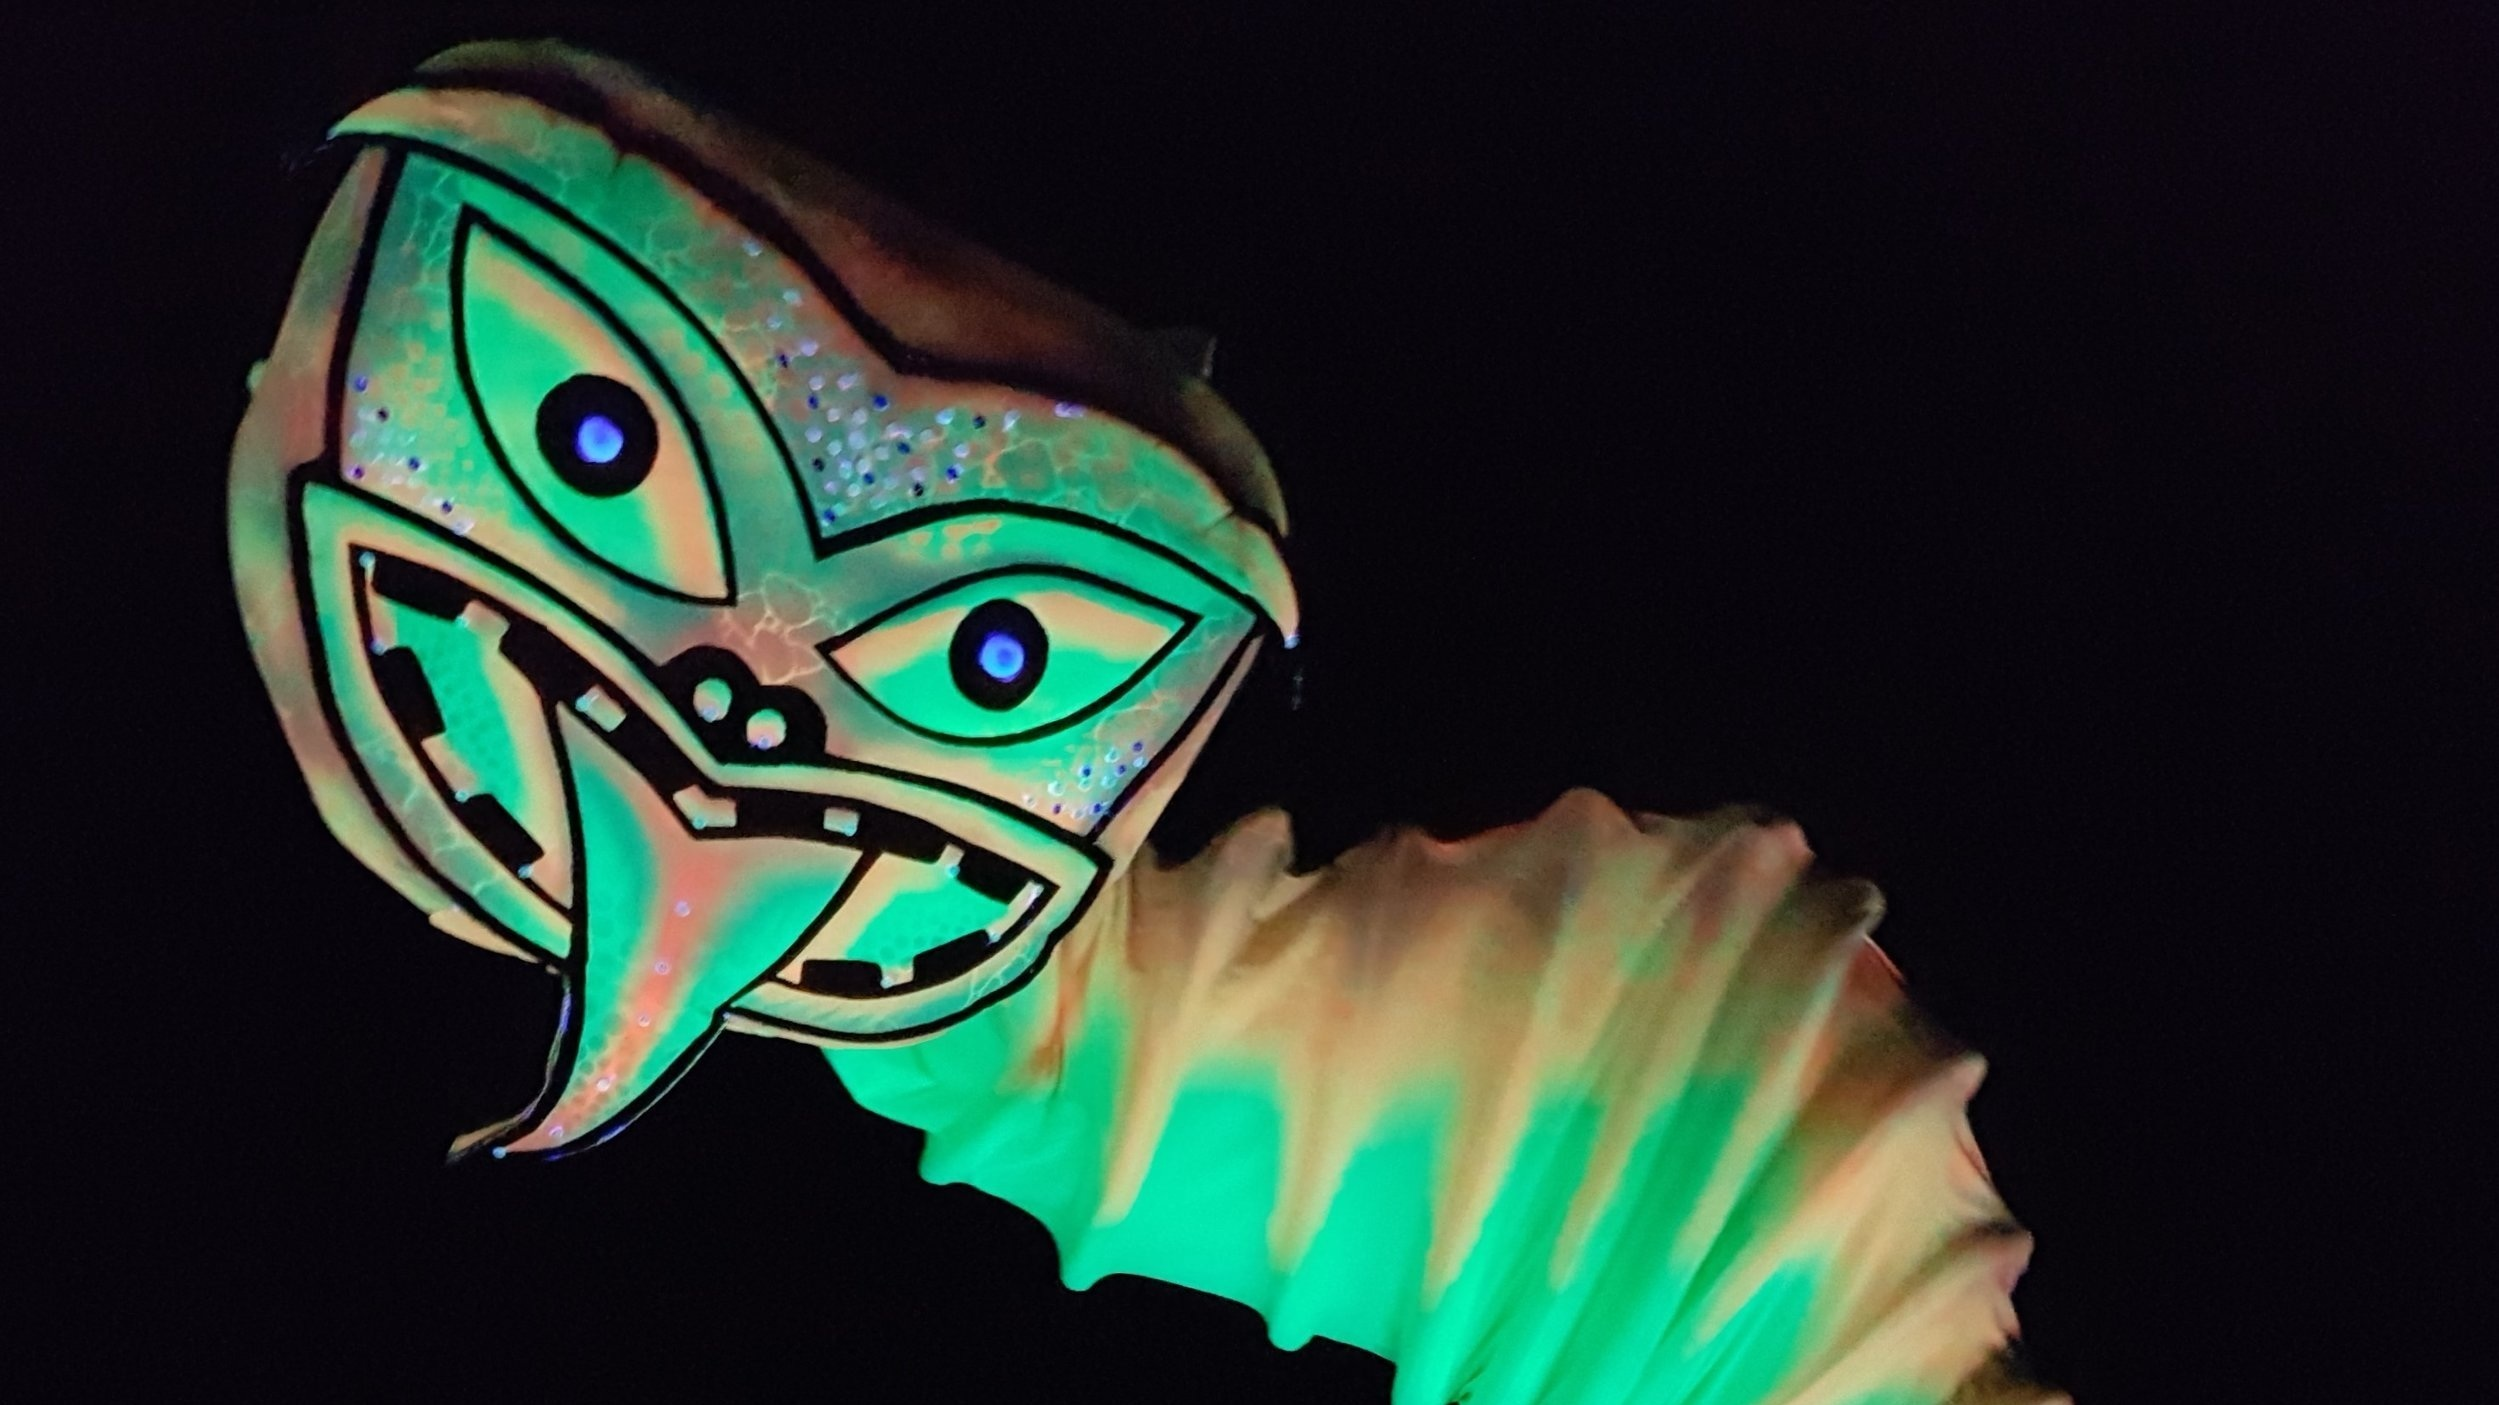 DOWNLOAD - I'm A Taniwha